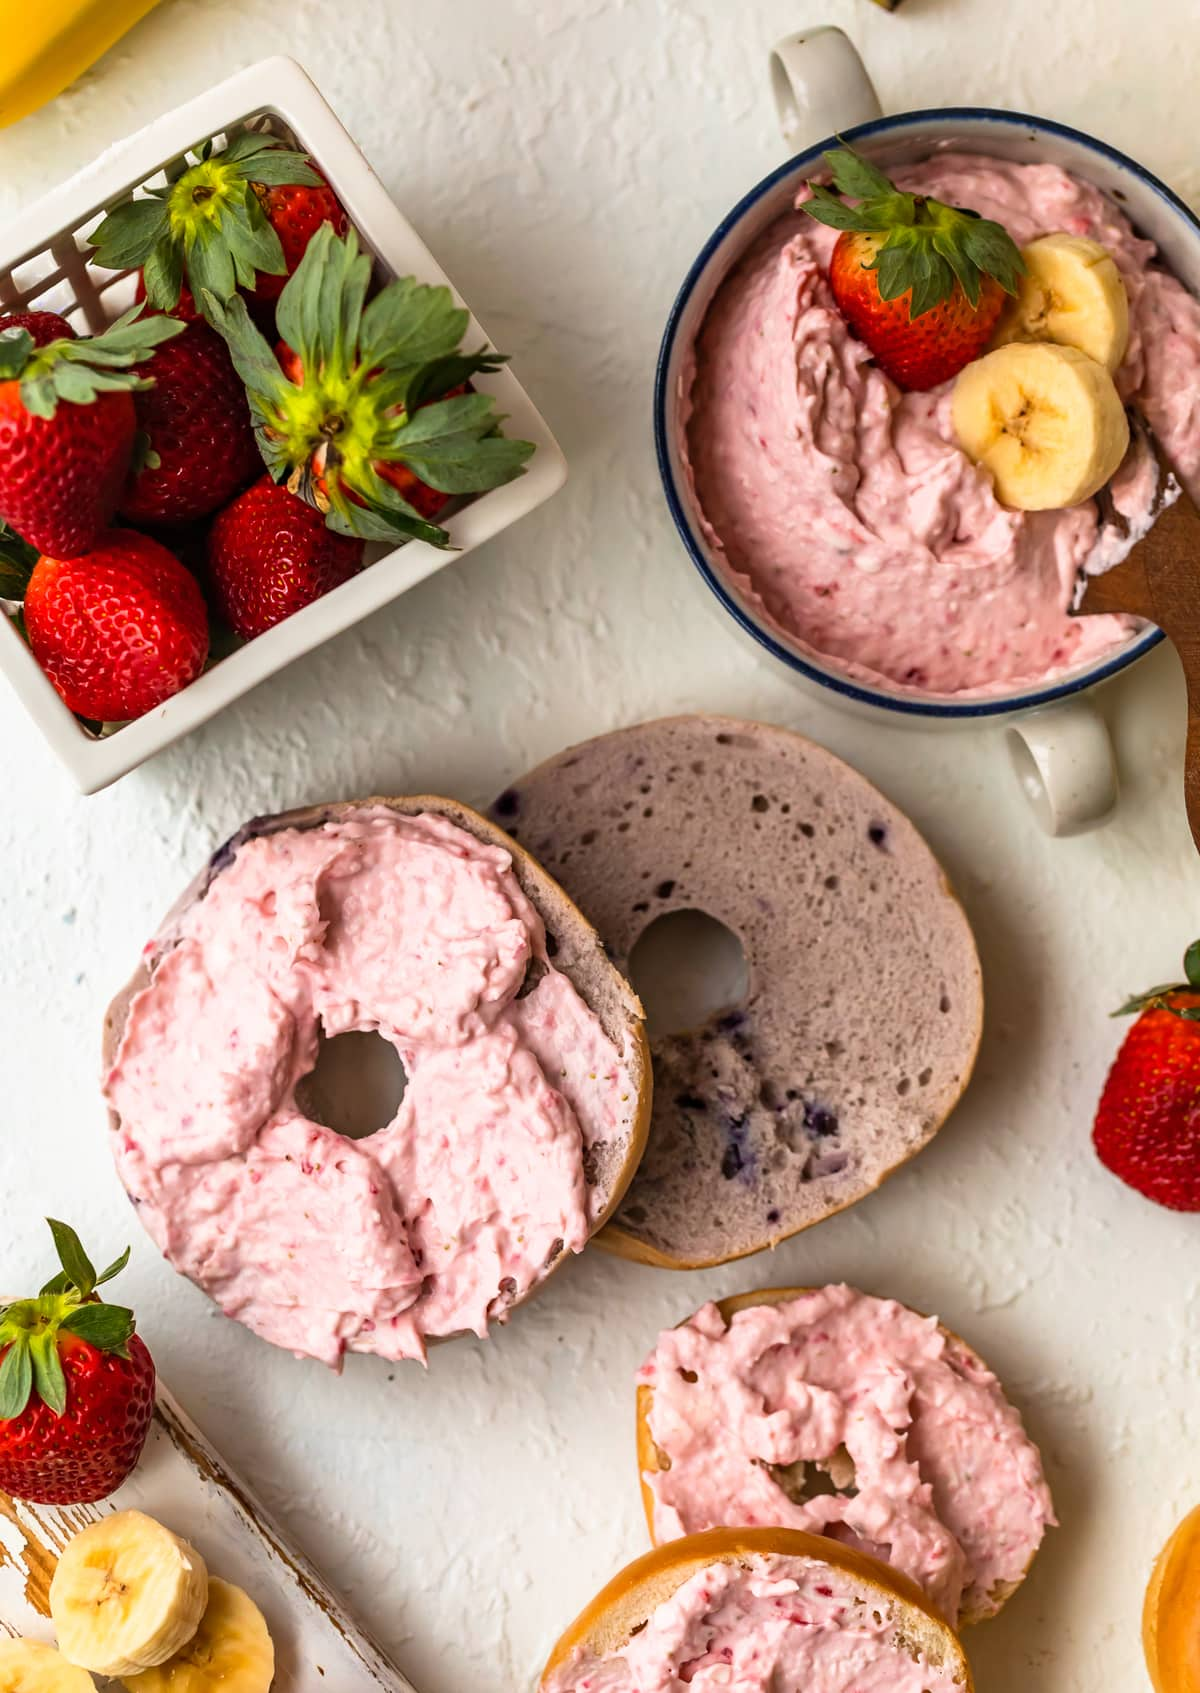 a bagel with cream cheese next to a basket of strawberries and a bowl of strawberry cream cheese